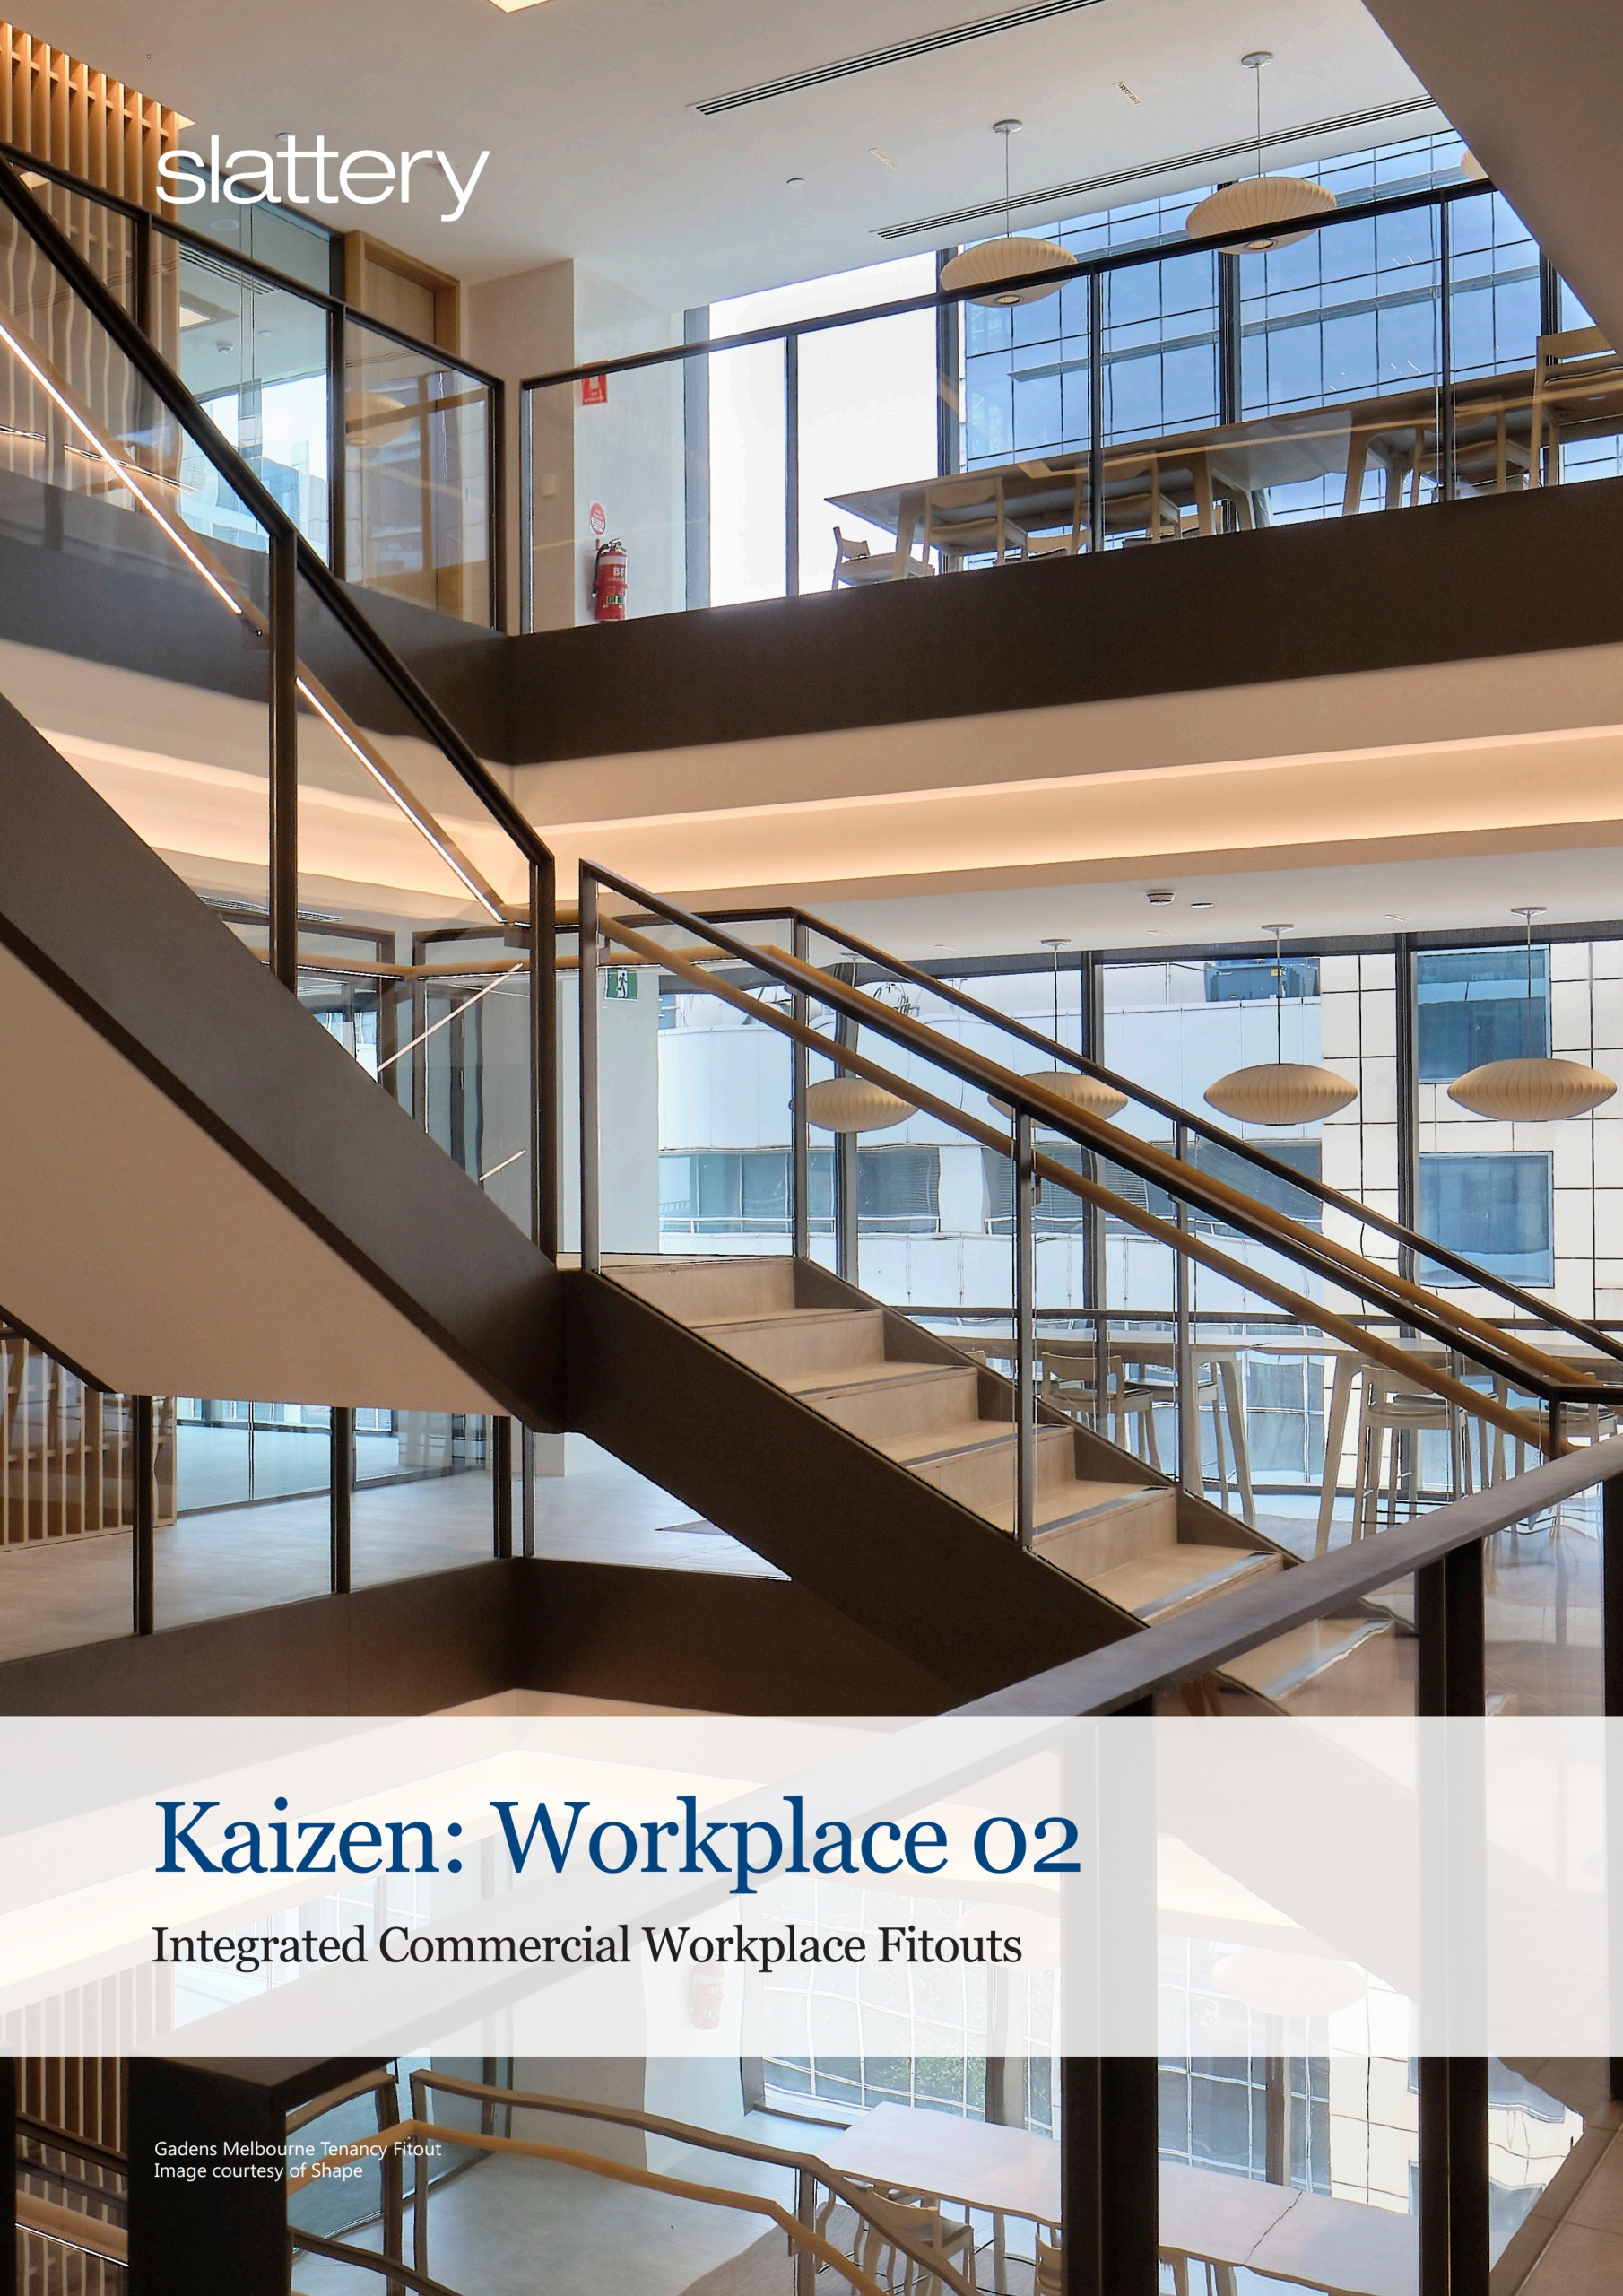 Integrated Commercial Workplace Fitouts